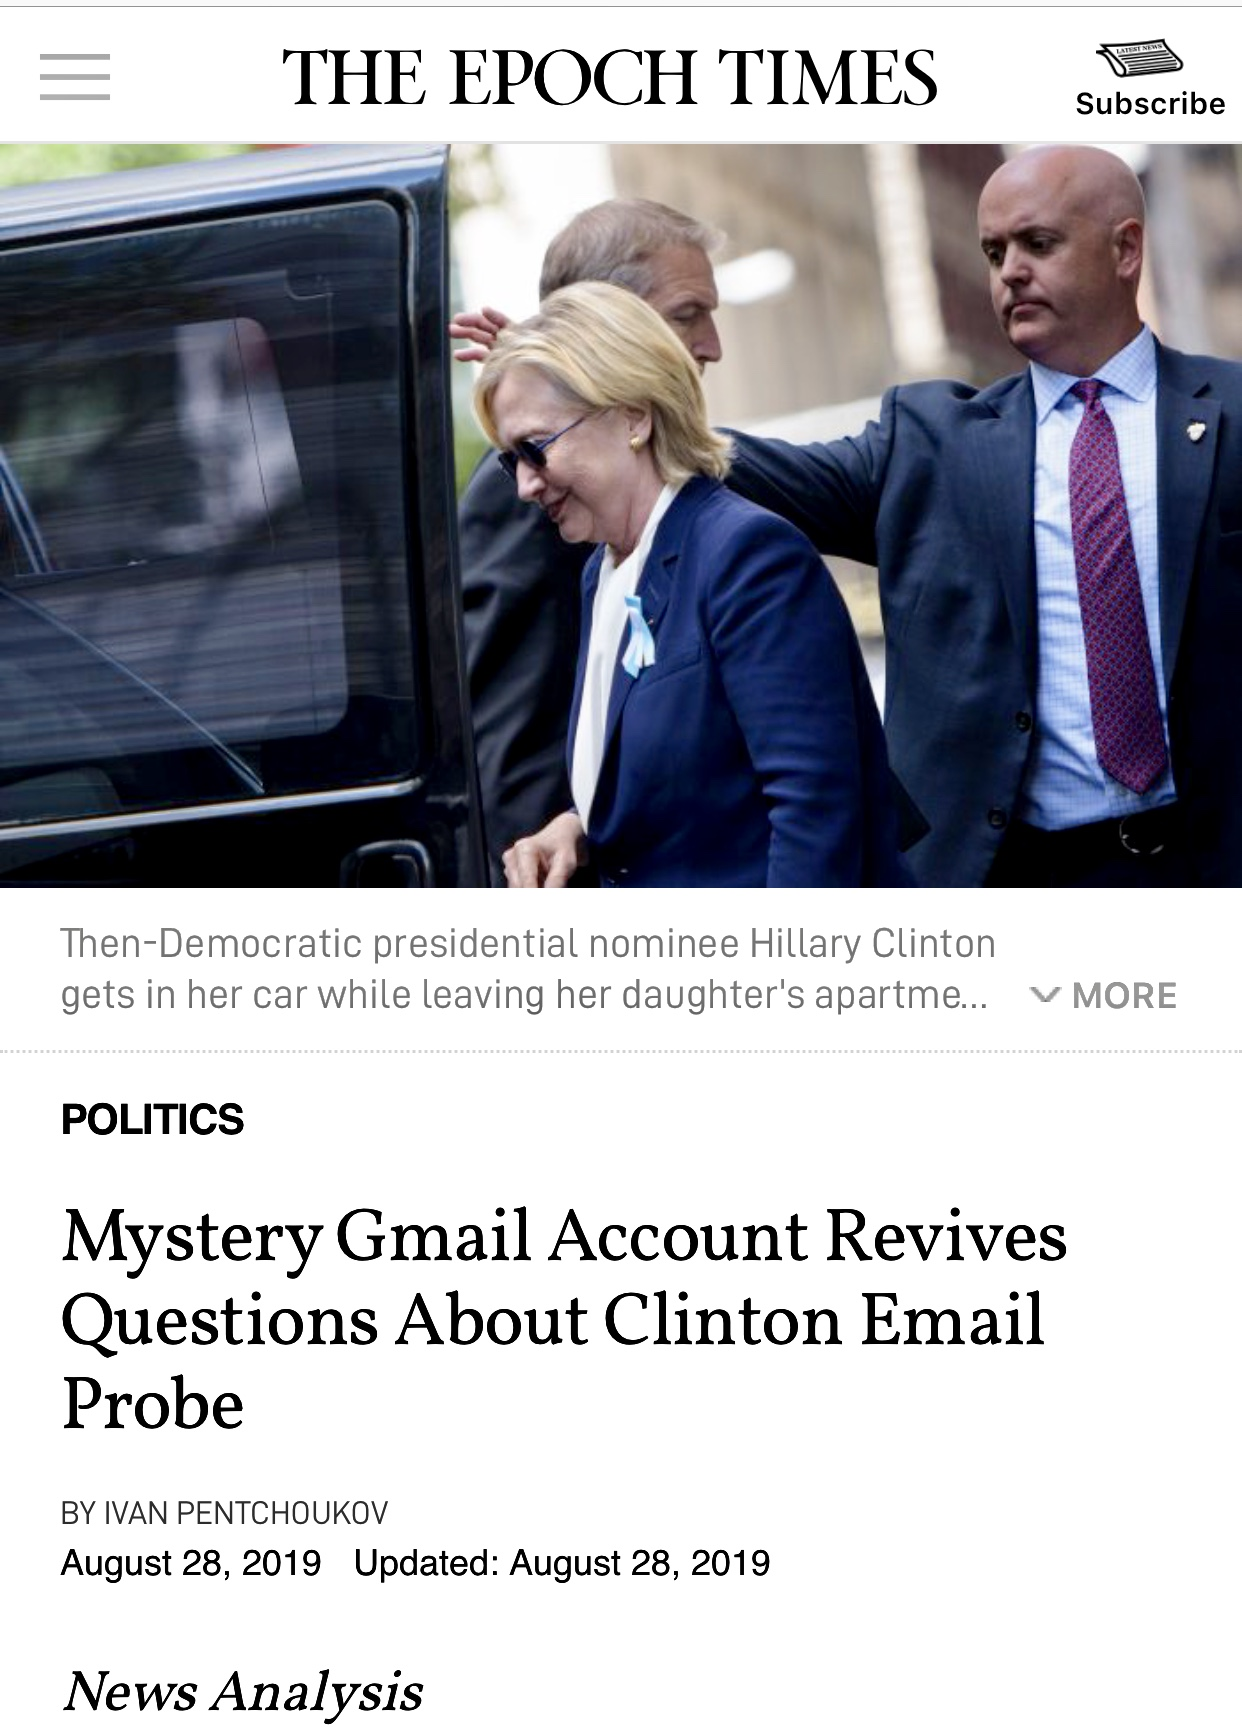 Mystery Gmail Account Revives Questions About Clinton Email Probe